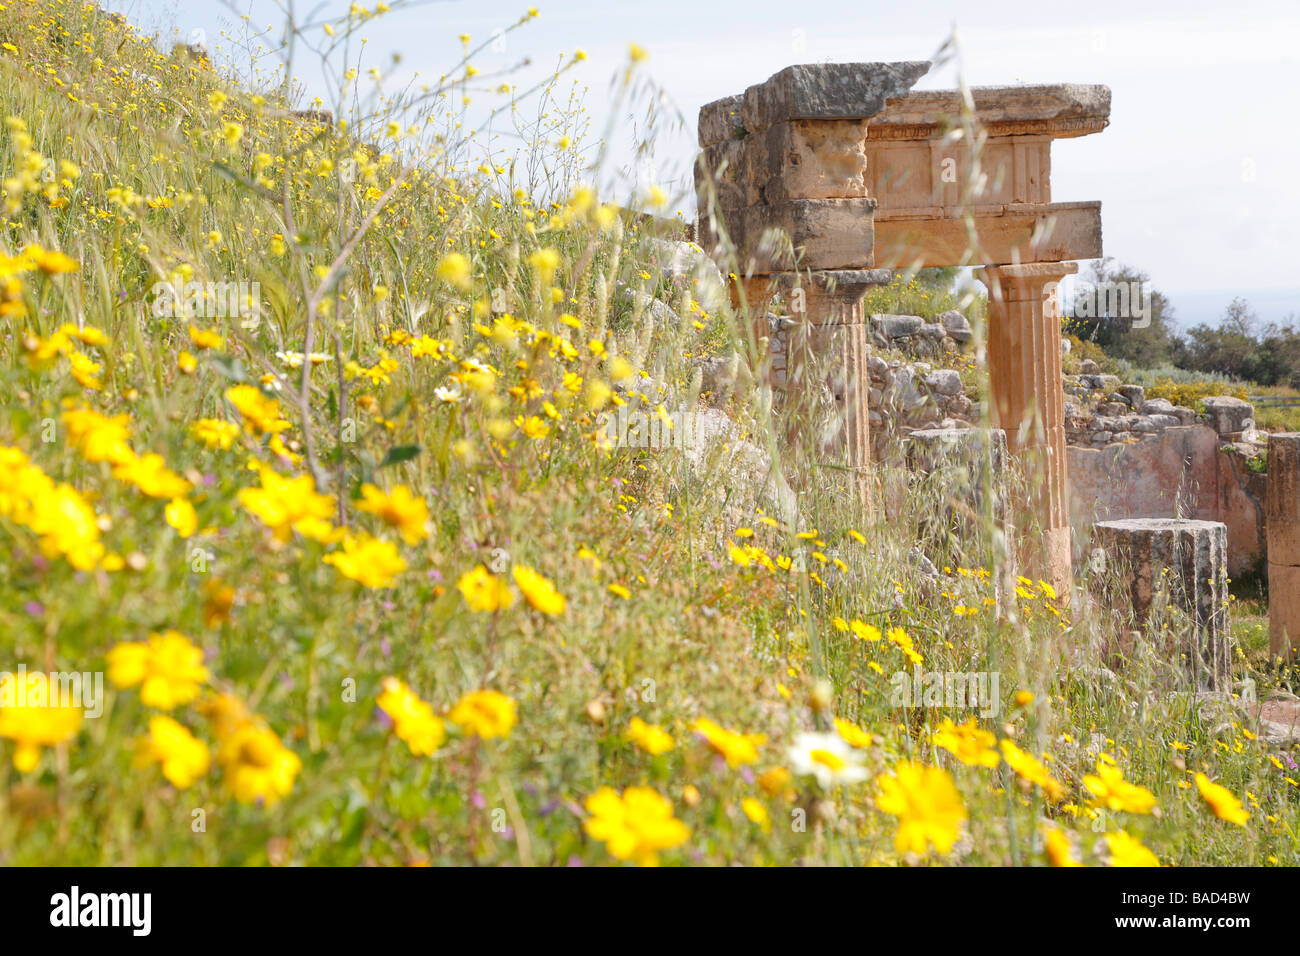 Remains of Hellenistic-Roman town of Solunto, Palermo area, Sicily, Italy - Stock Image